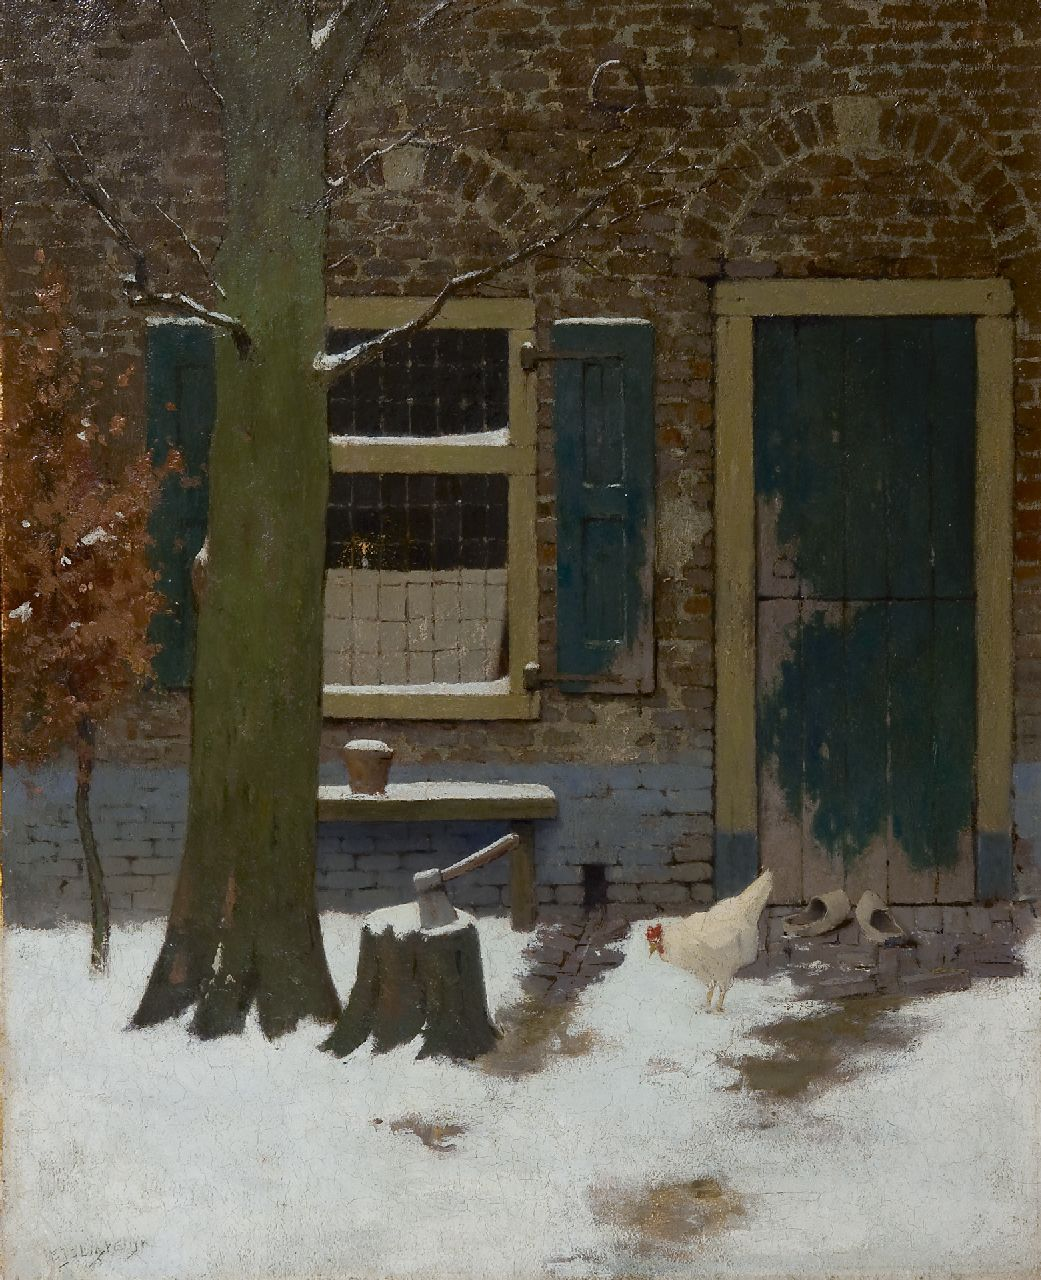 Ligtelijn E.J.  | Evert Jan Ligtelijn, A snowy farmyard with a chicken, oil on board 50.0 x 40.0 cm, signed l.l.